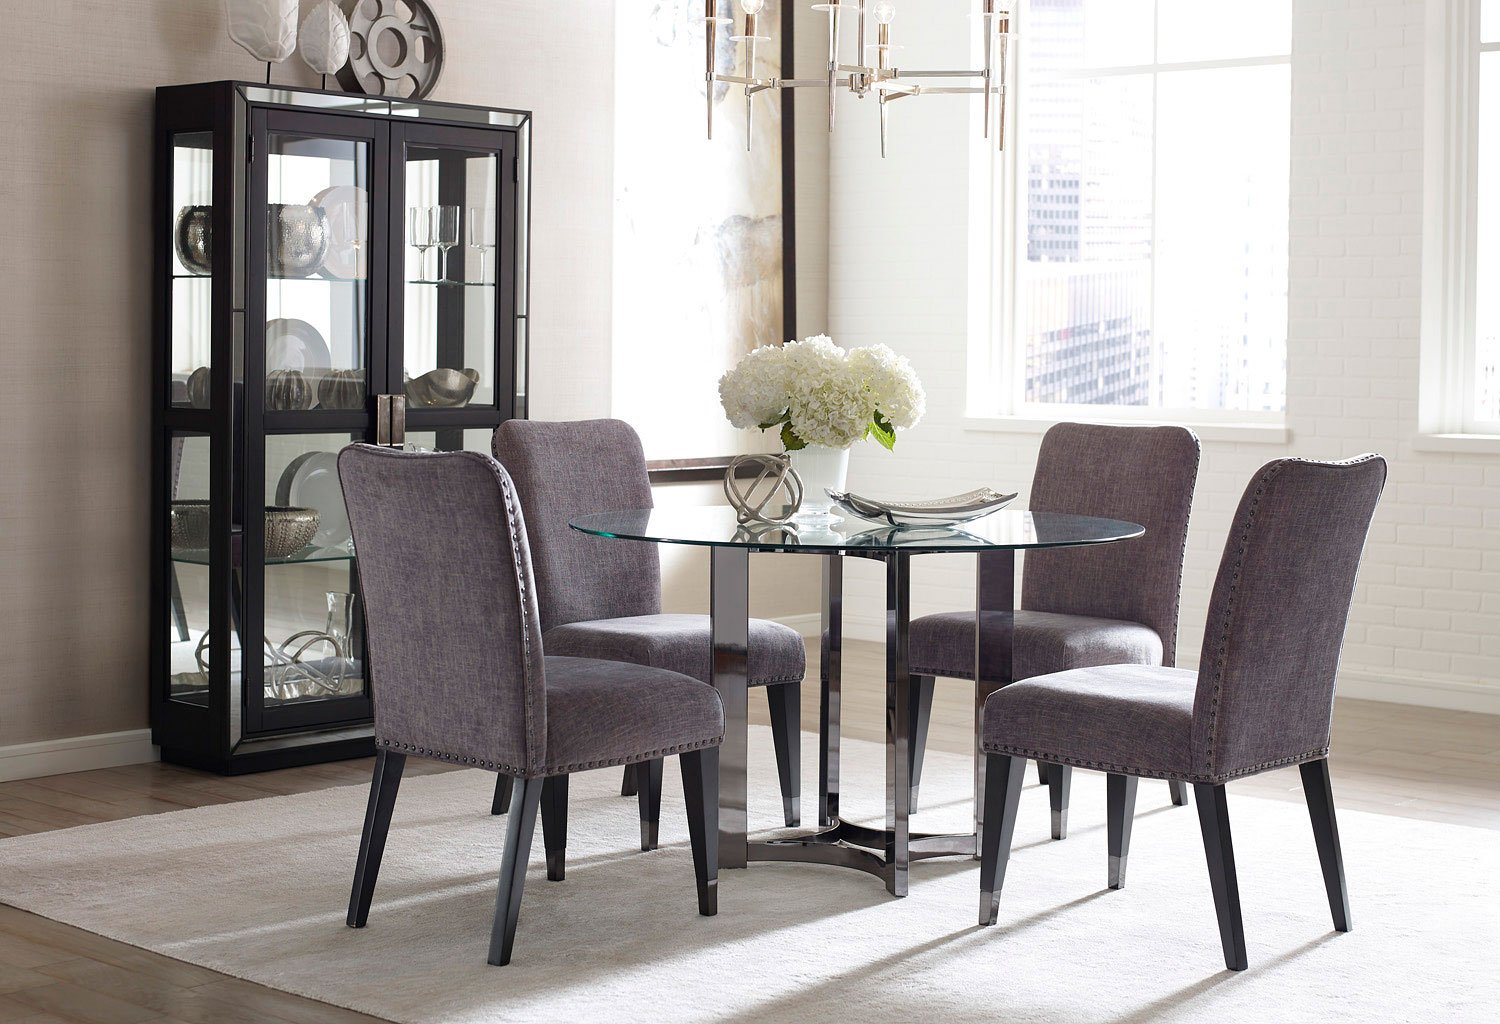 Silverton sound round dining room set casual dining sets dining room and kitchen furniture - Casual kitchen sets ...